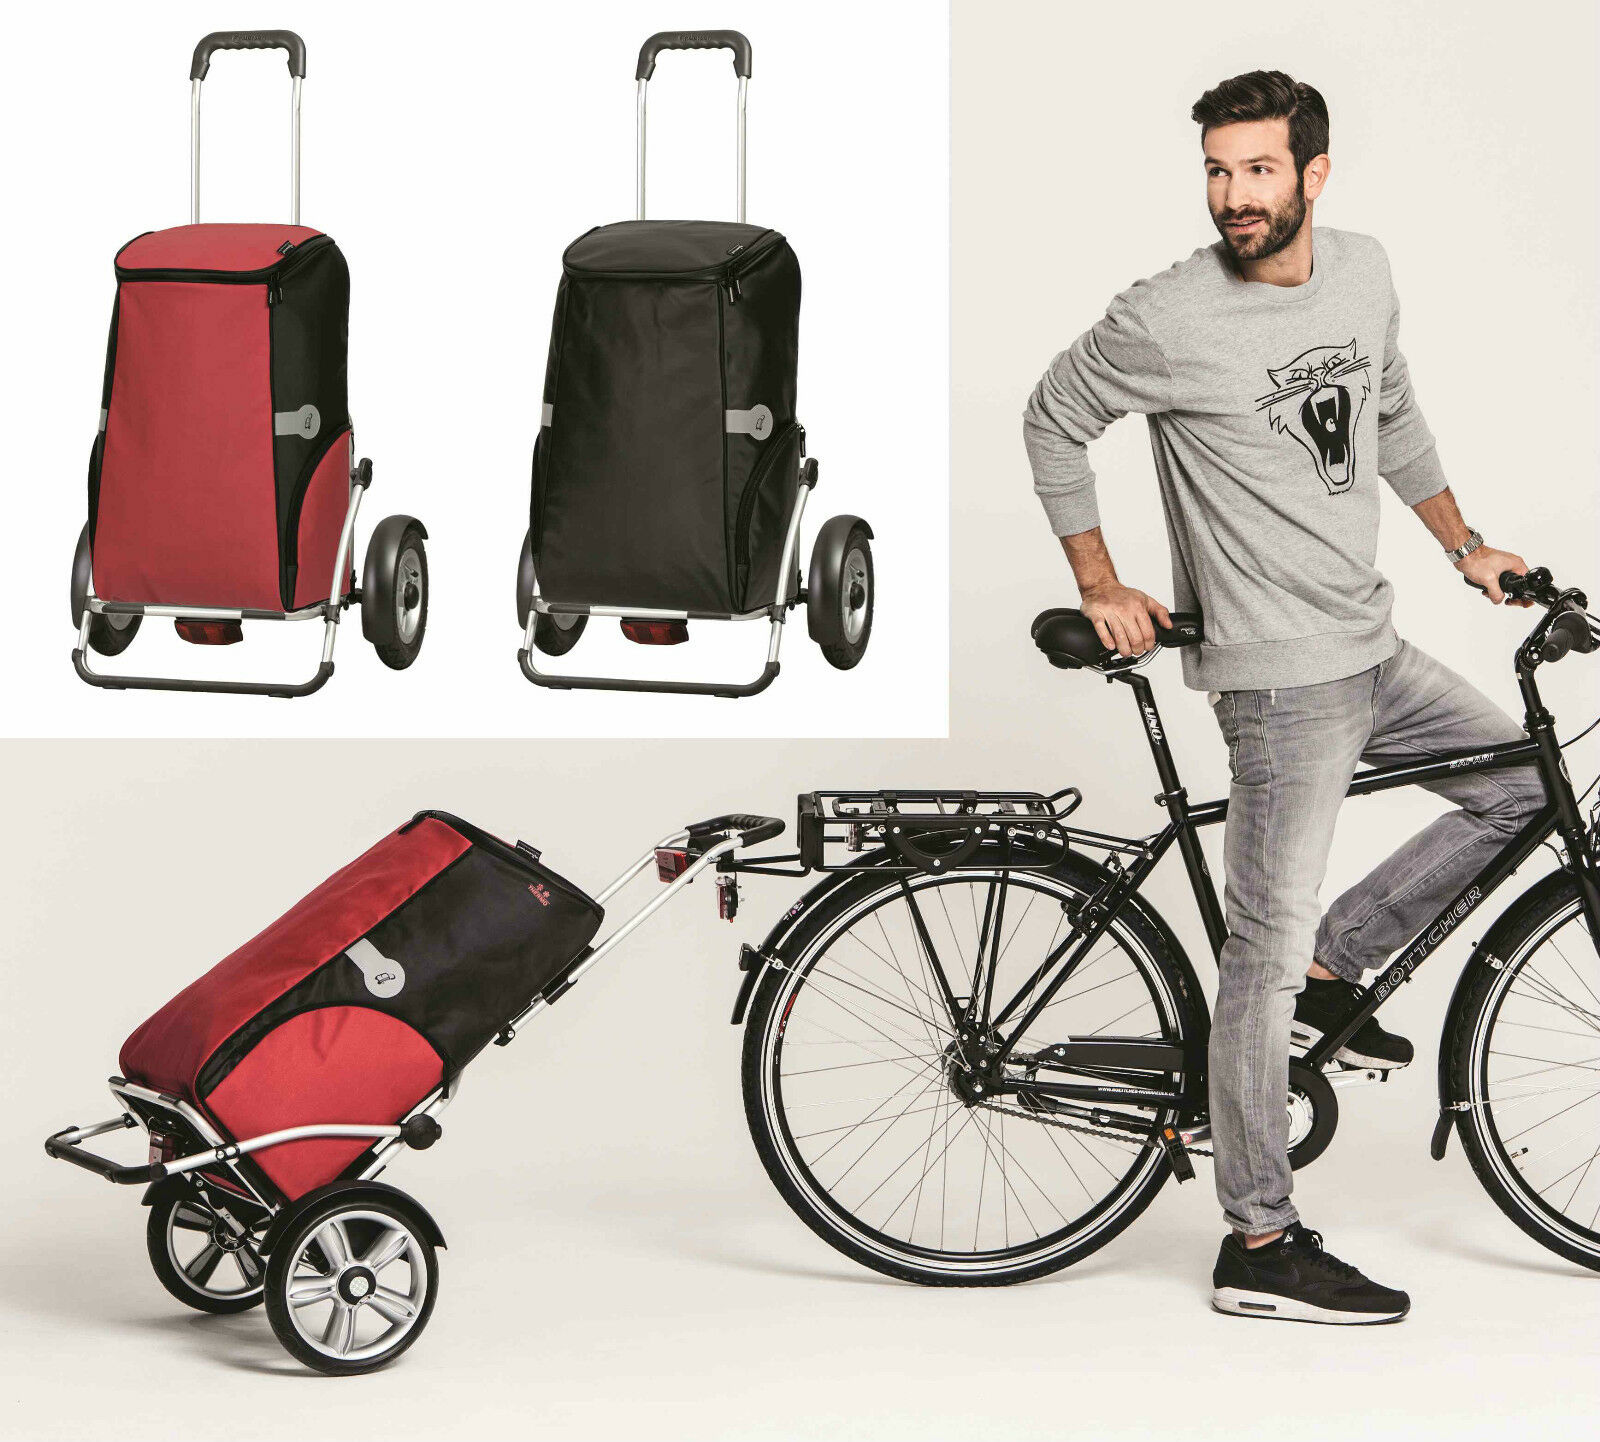 Andersen Royal Shopper plus angelical Alu thermofach remolque de bicicleta compra trolley